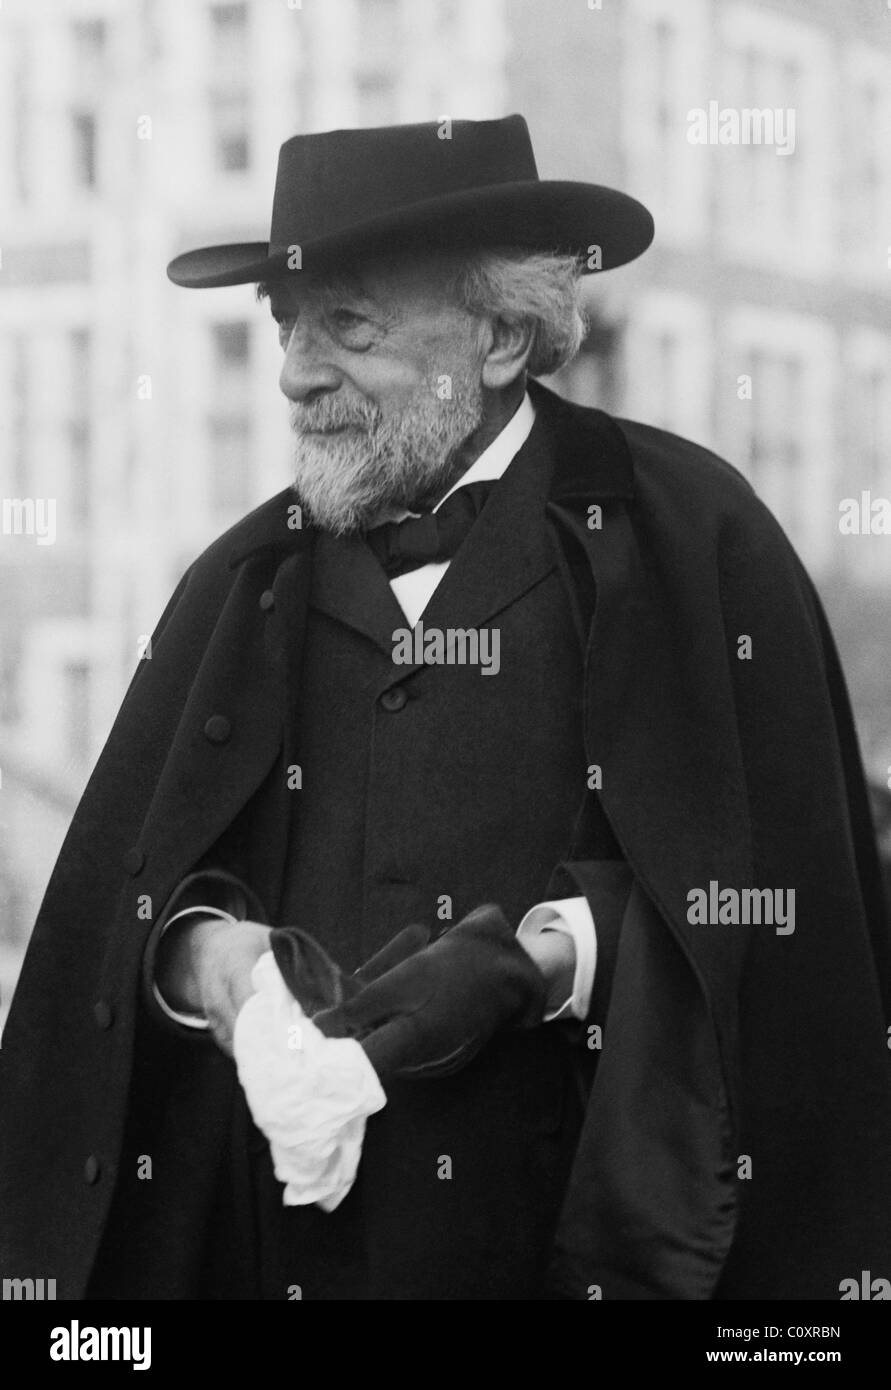 Vintage photo circa 1912 of pioneering German-born US pediatrician Abraham Jacobi (1830 - 1919). - Stock Image